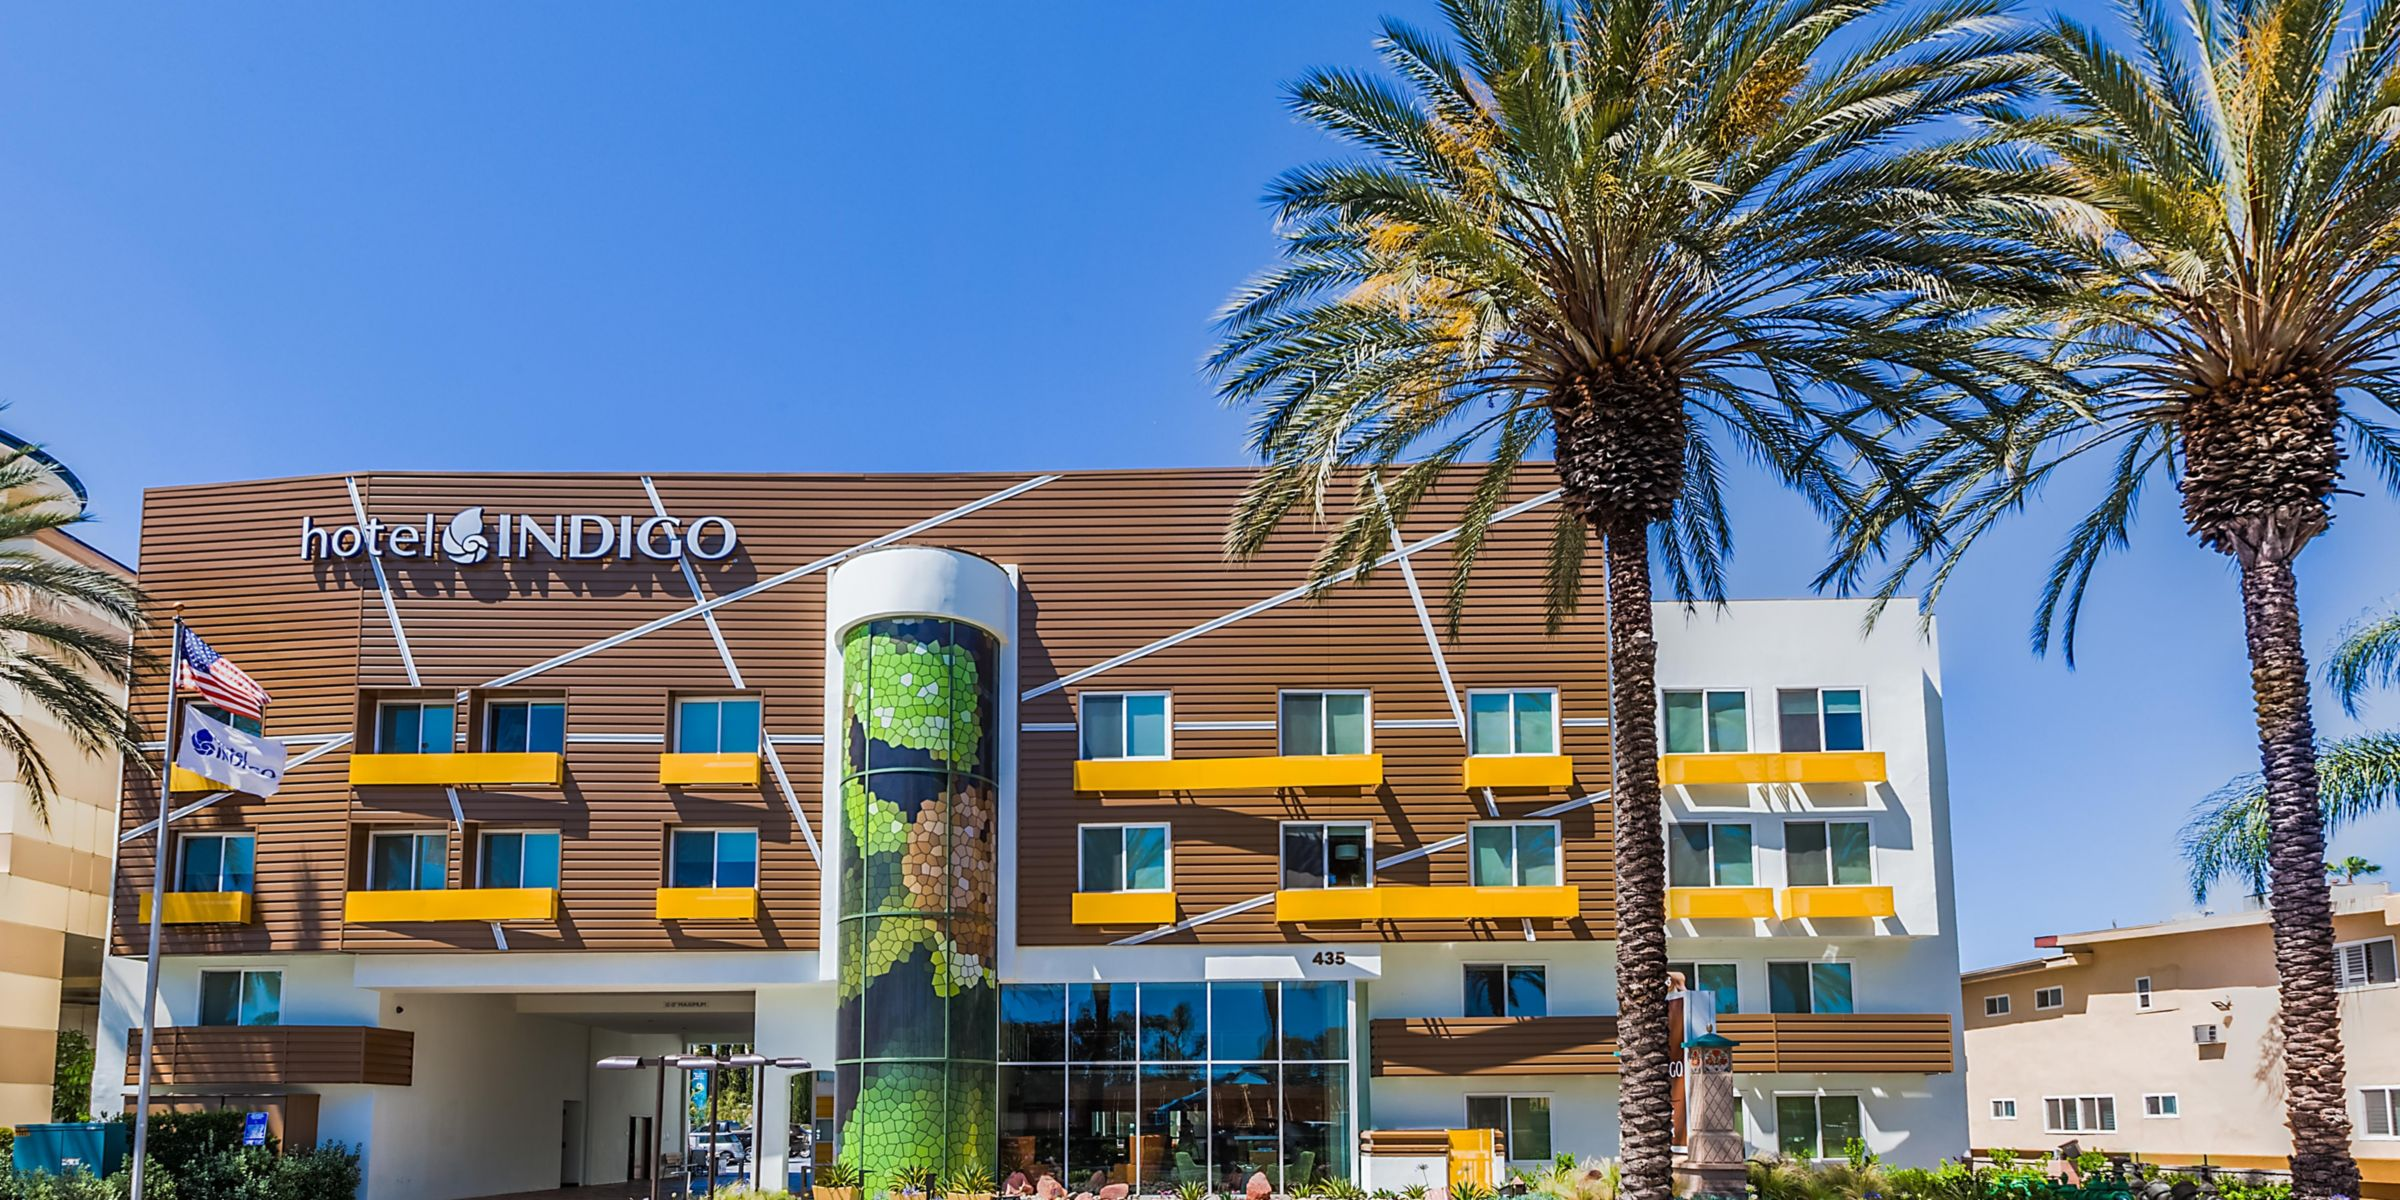 Hotel Indigo Anaheim Is A Short 15 Minute Walk To Disneyland